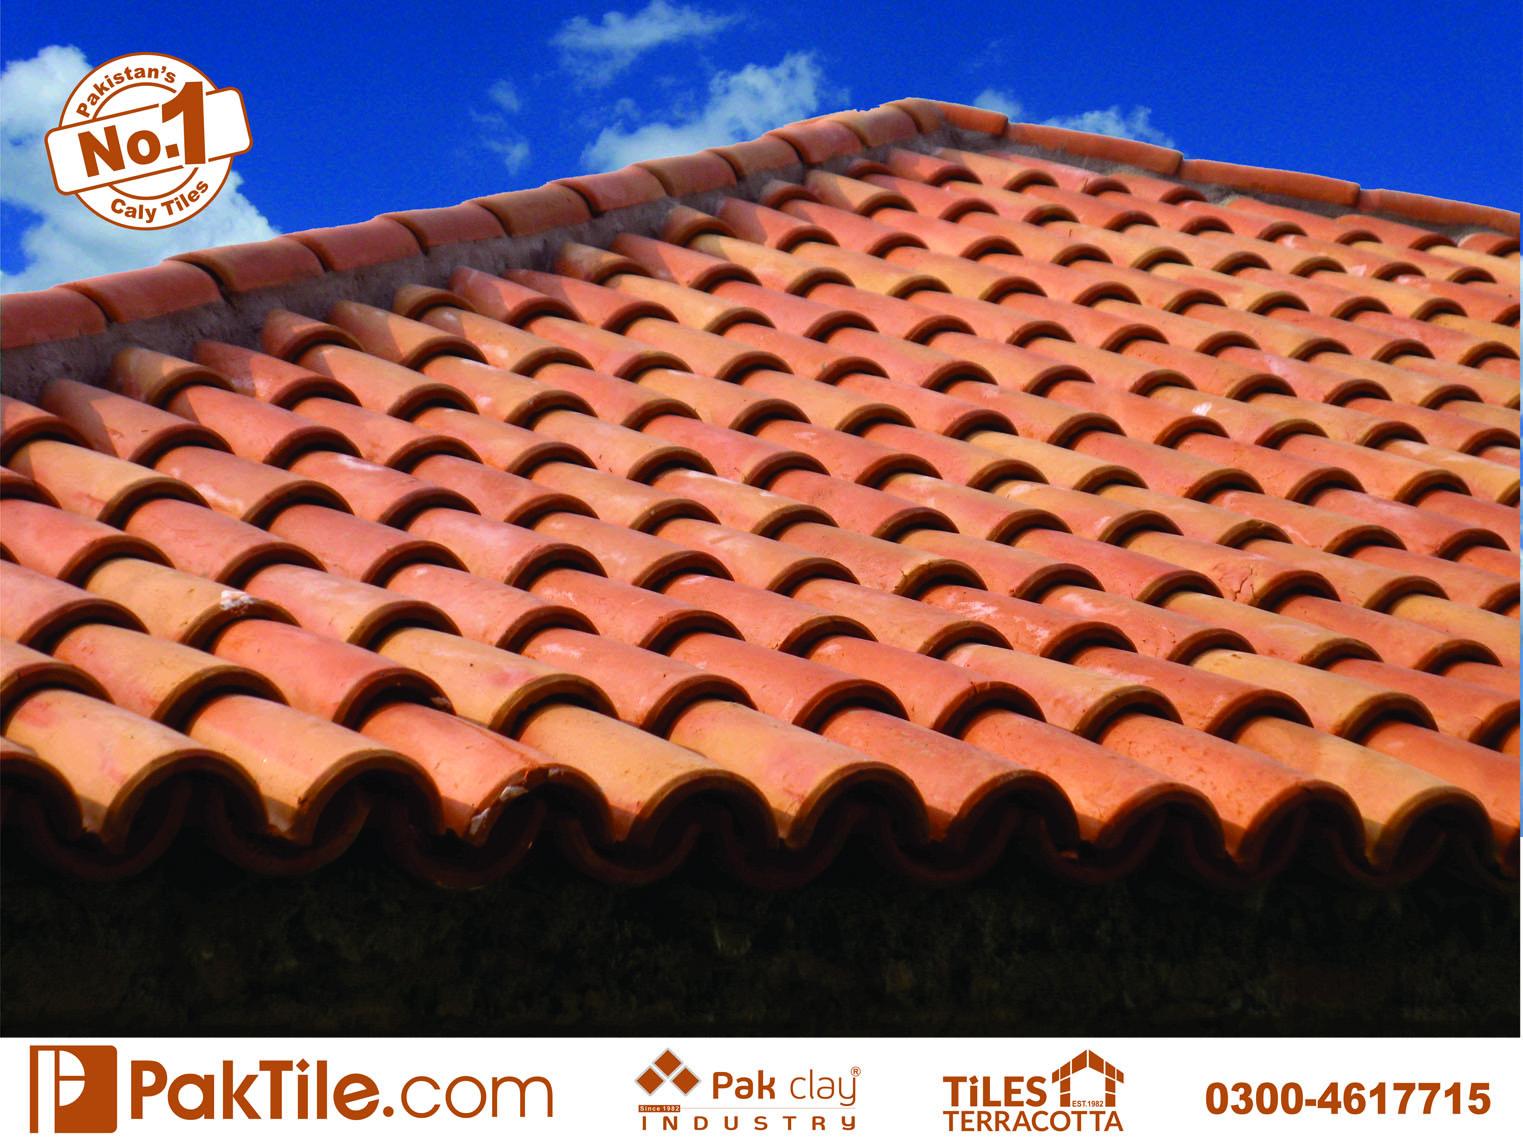 Front Elevation Tiles In Lahore : Spanish clay roof tiles ″ pak